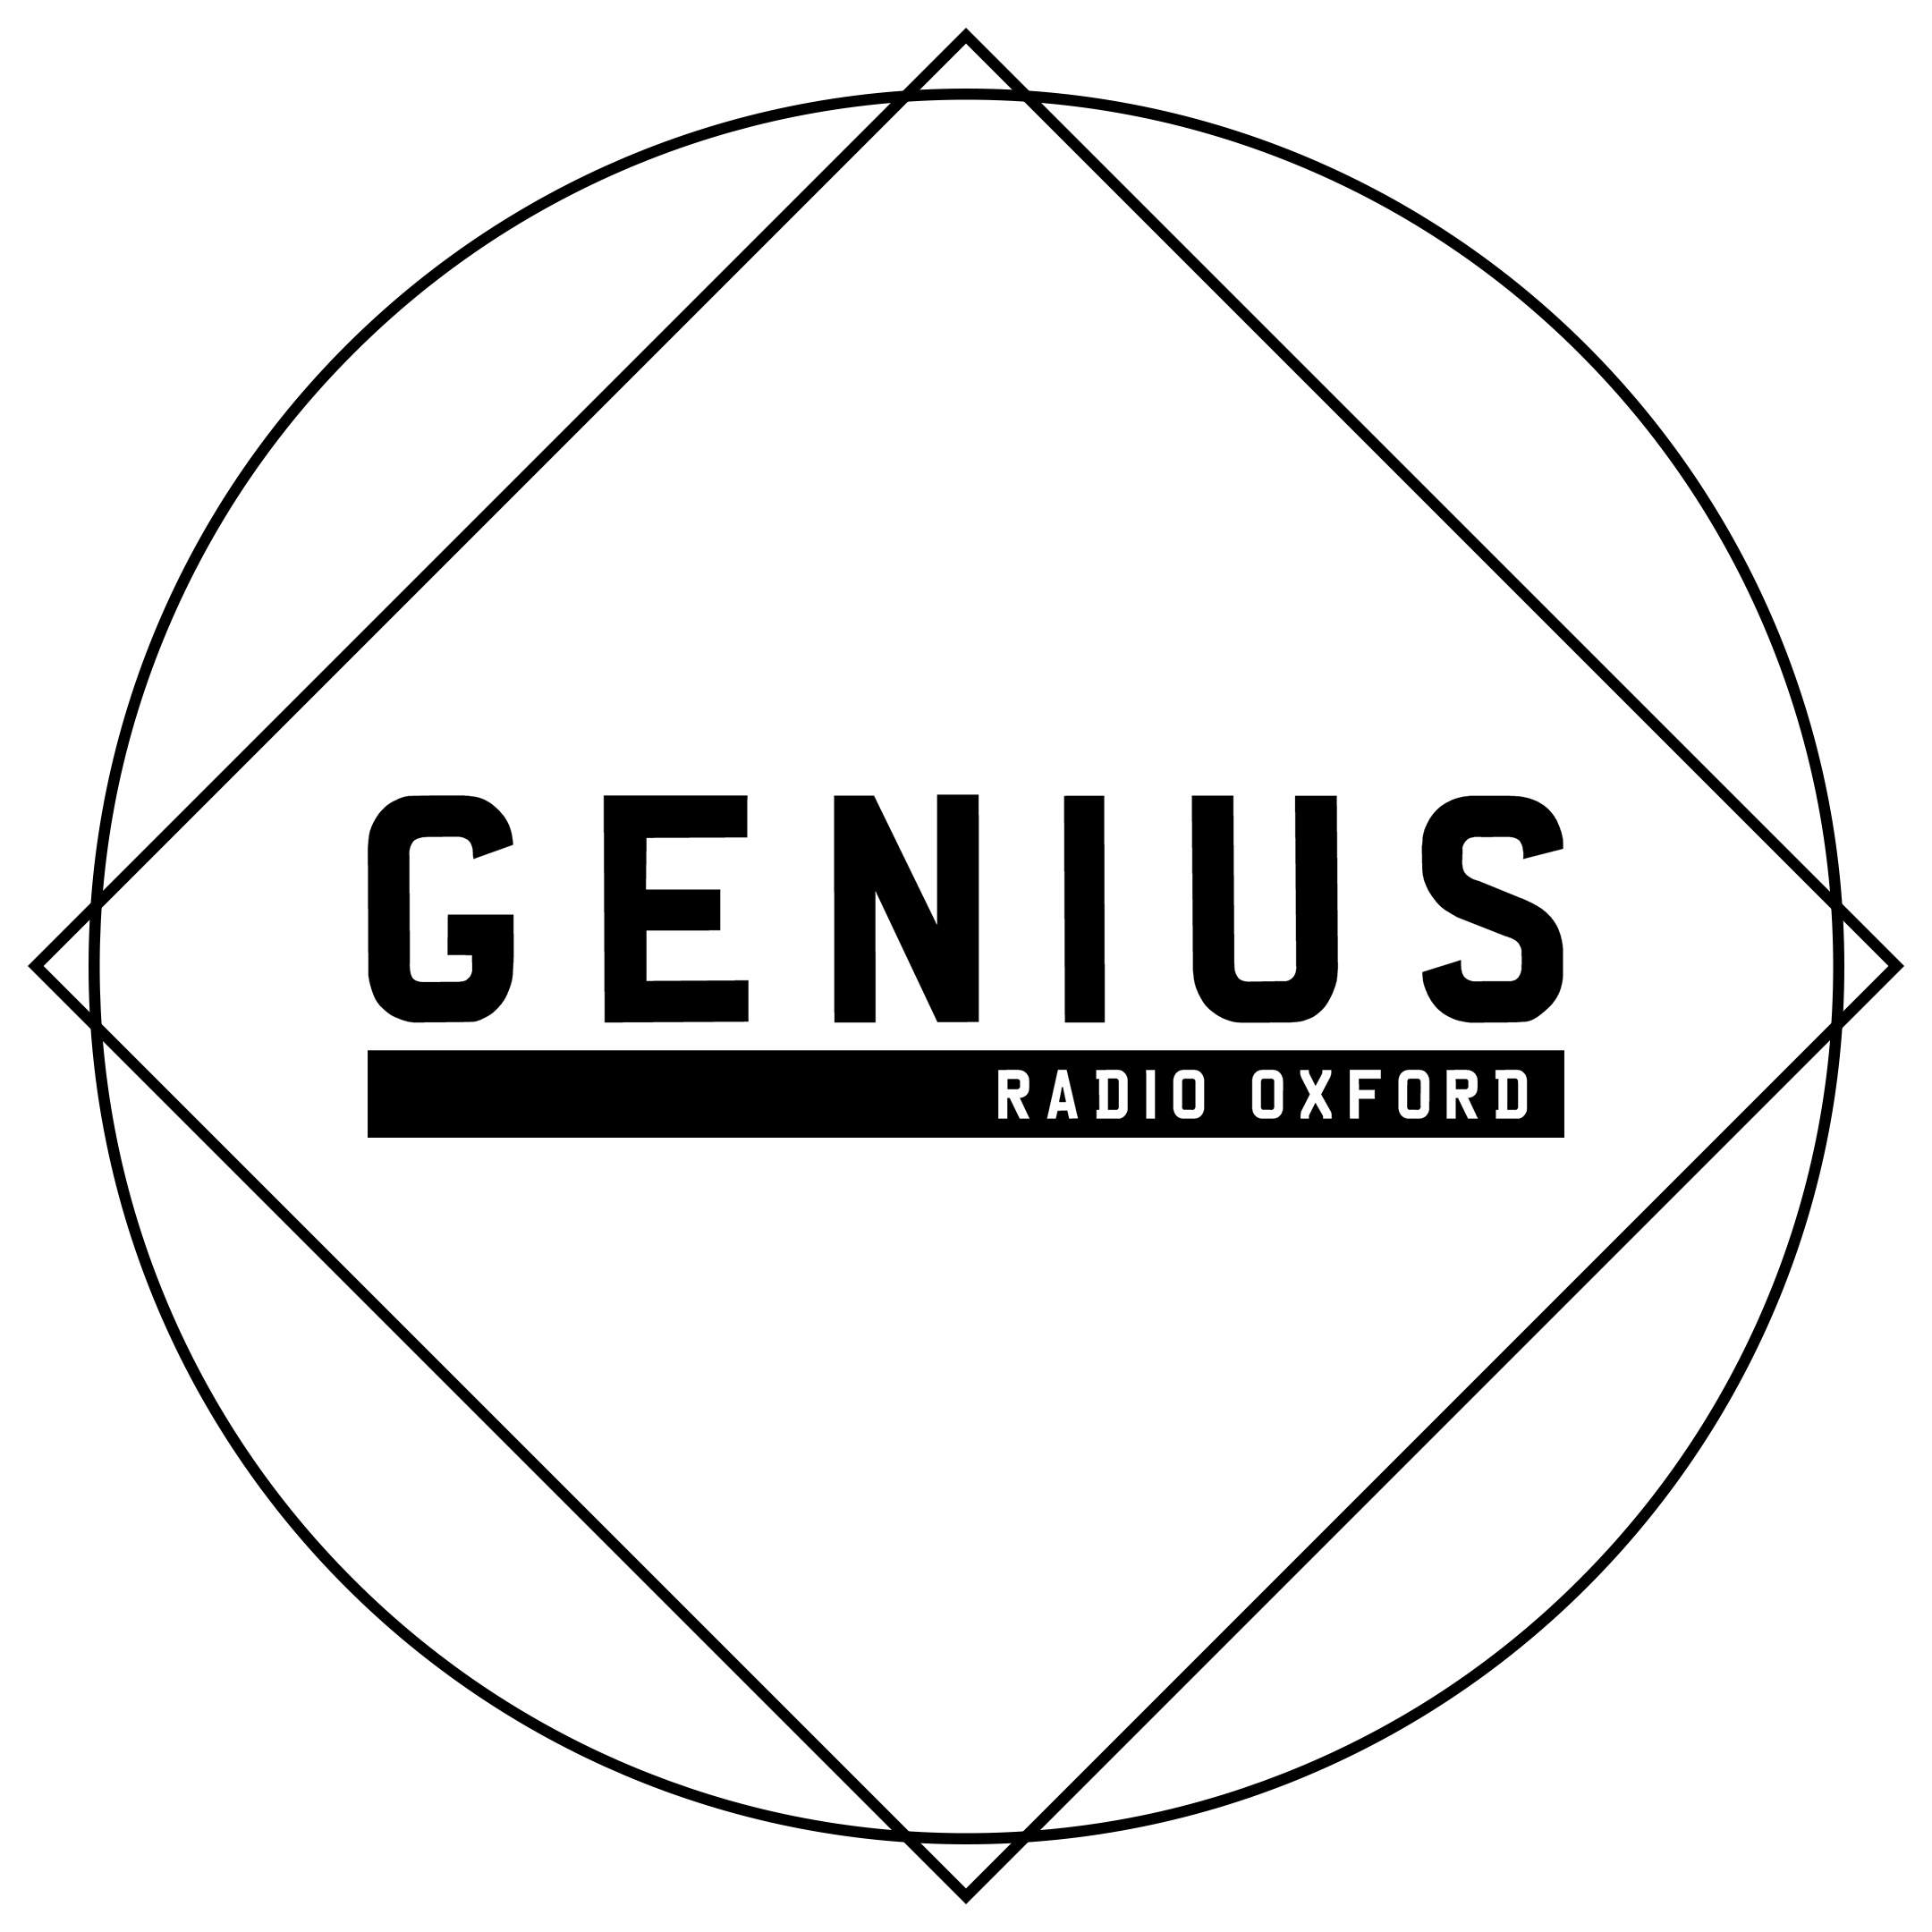 Dj on the radio at Genius Radio